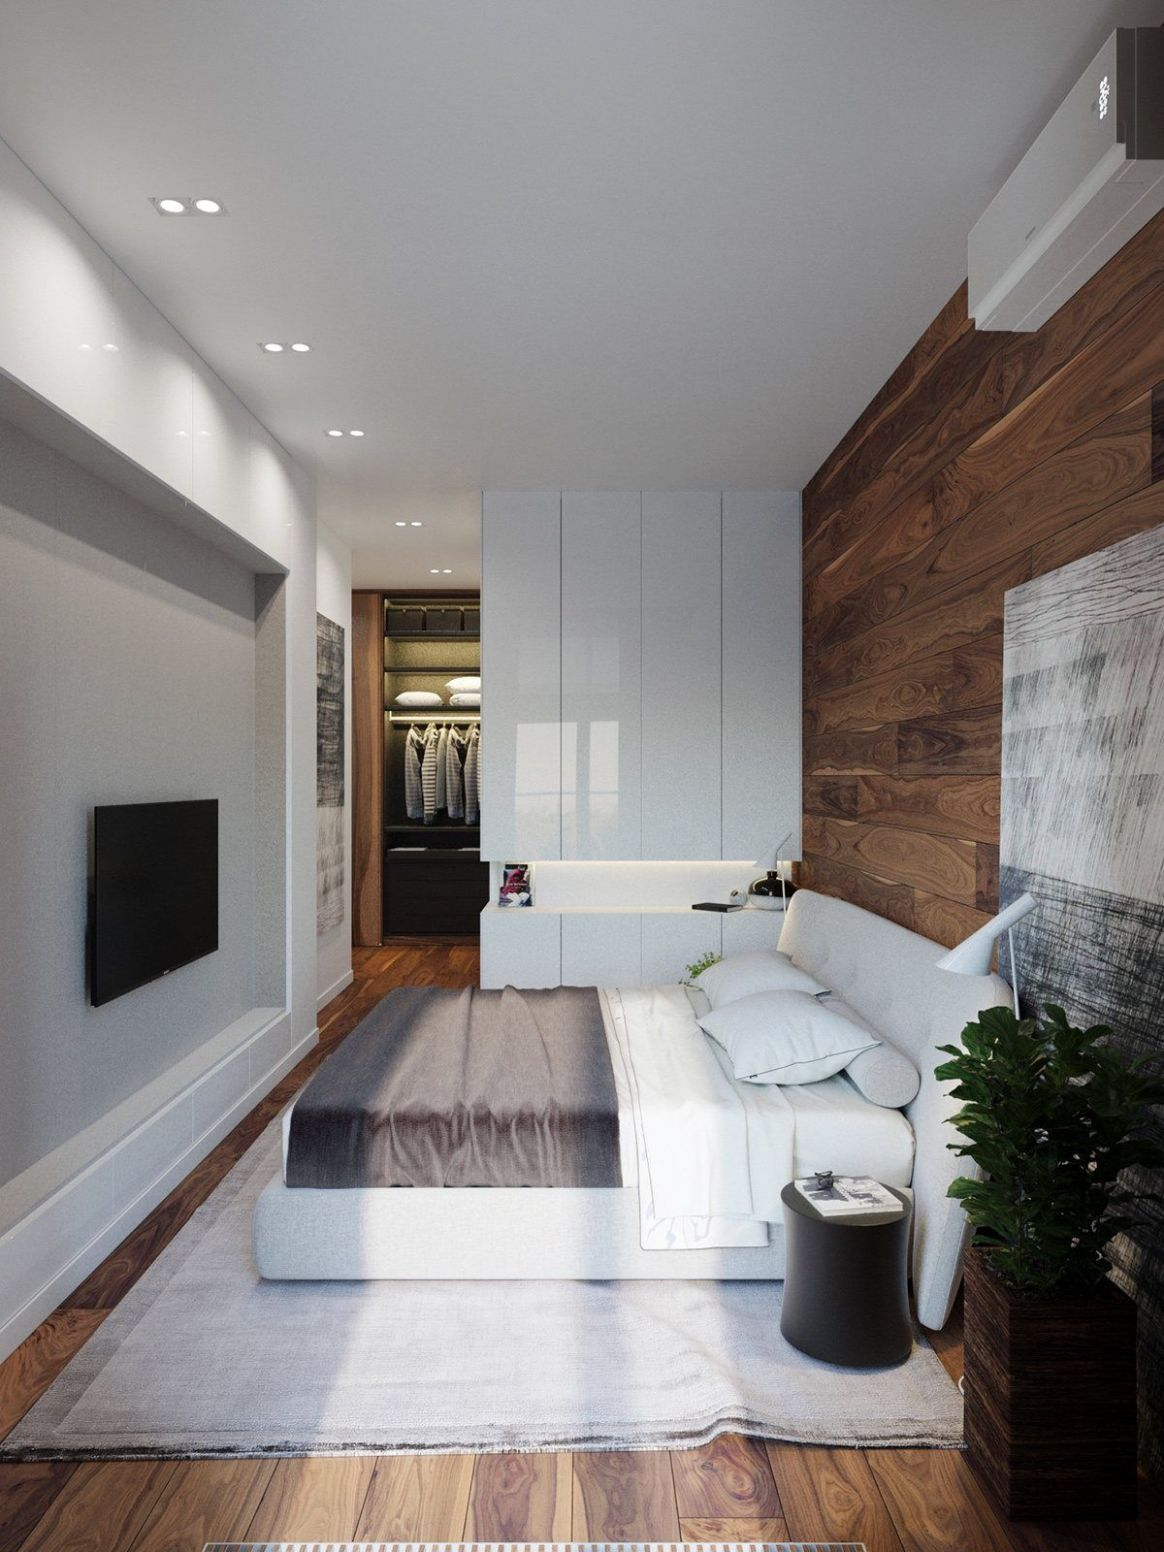 Applying a Rustic Studio Apartment Design Which Decor By Wooden ...